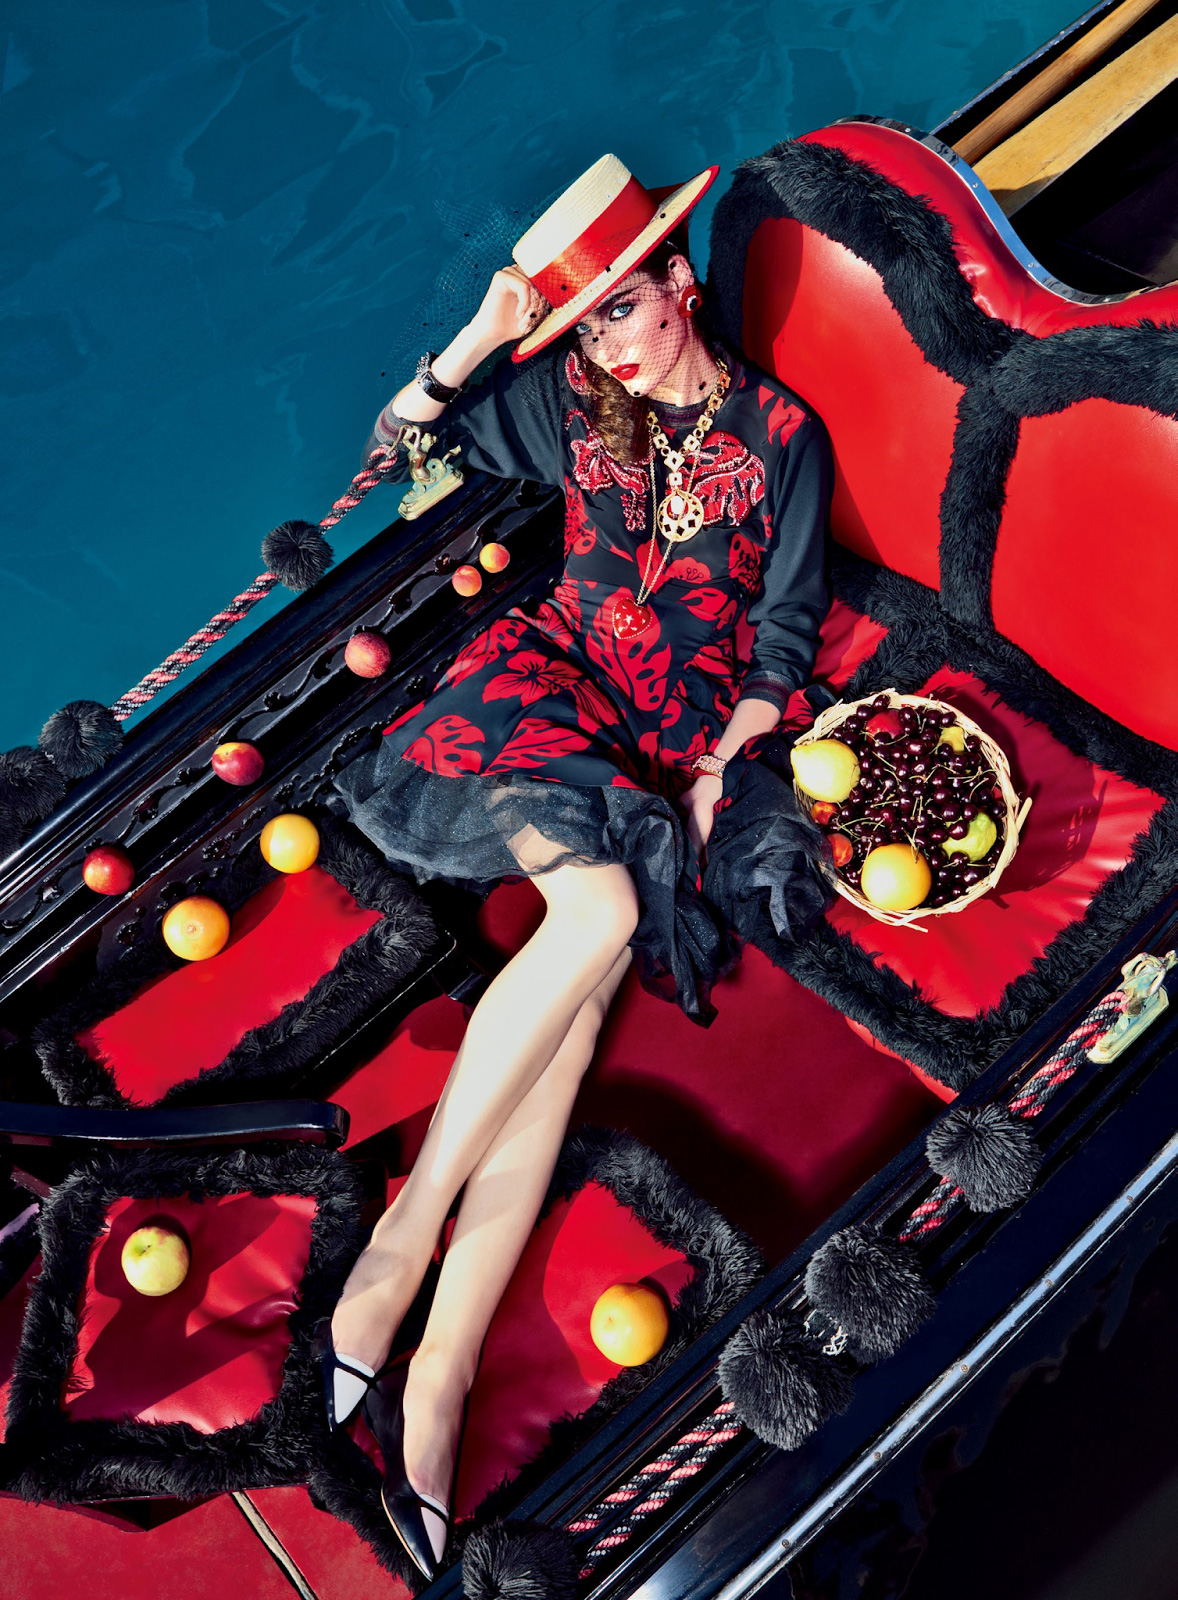 Zuzanna-Bijoch-by-Pierpaolo-Ferrari-for-Vogue-Japan-February-2014-(My-Fascination-with-Venice)-(5)